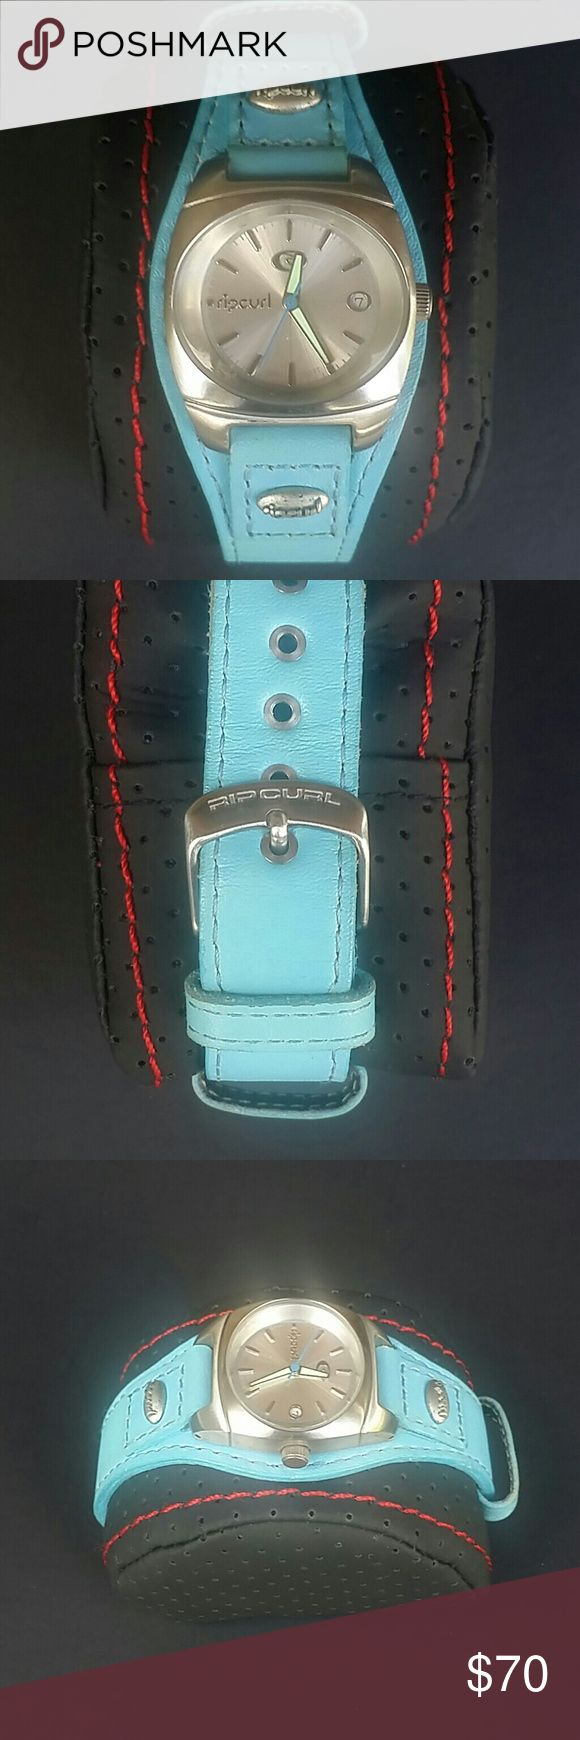 Ripcurl Womens Blue Leather Band Surfer Watch Ripcurl Womens Blue Leather Band Surfer Watch Excellent Condition Ripcurl Accessories Watches